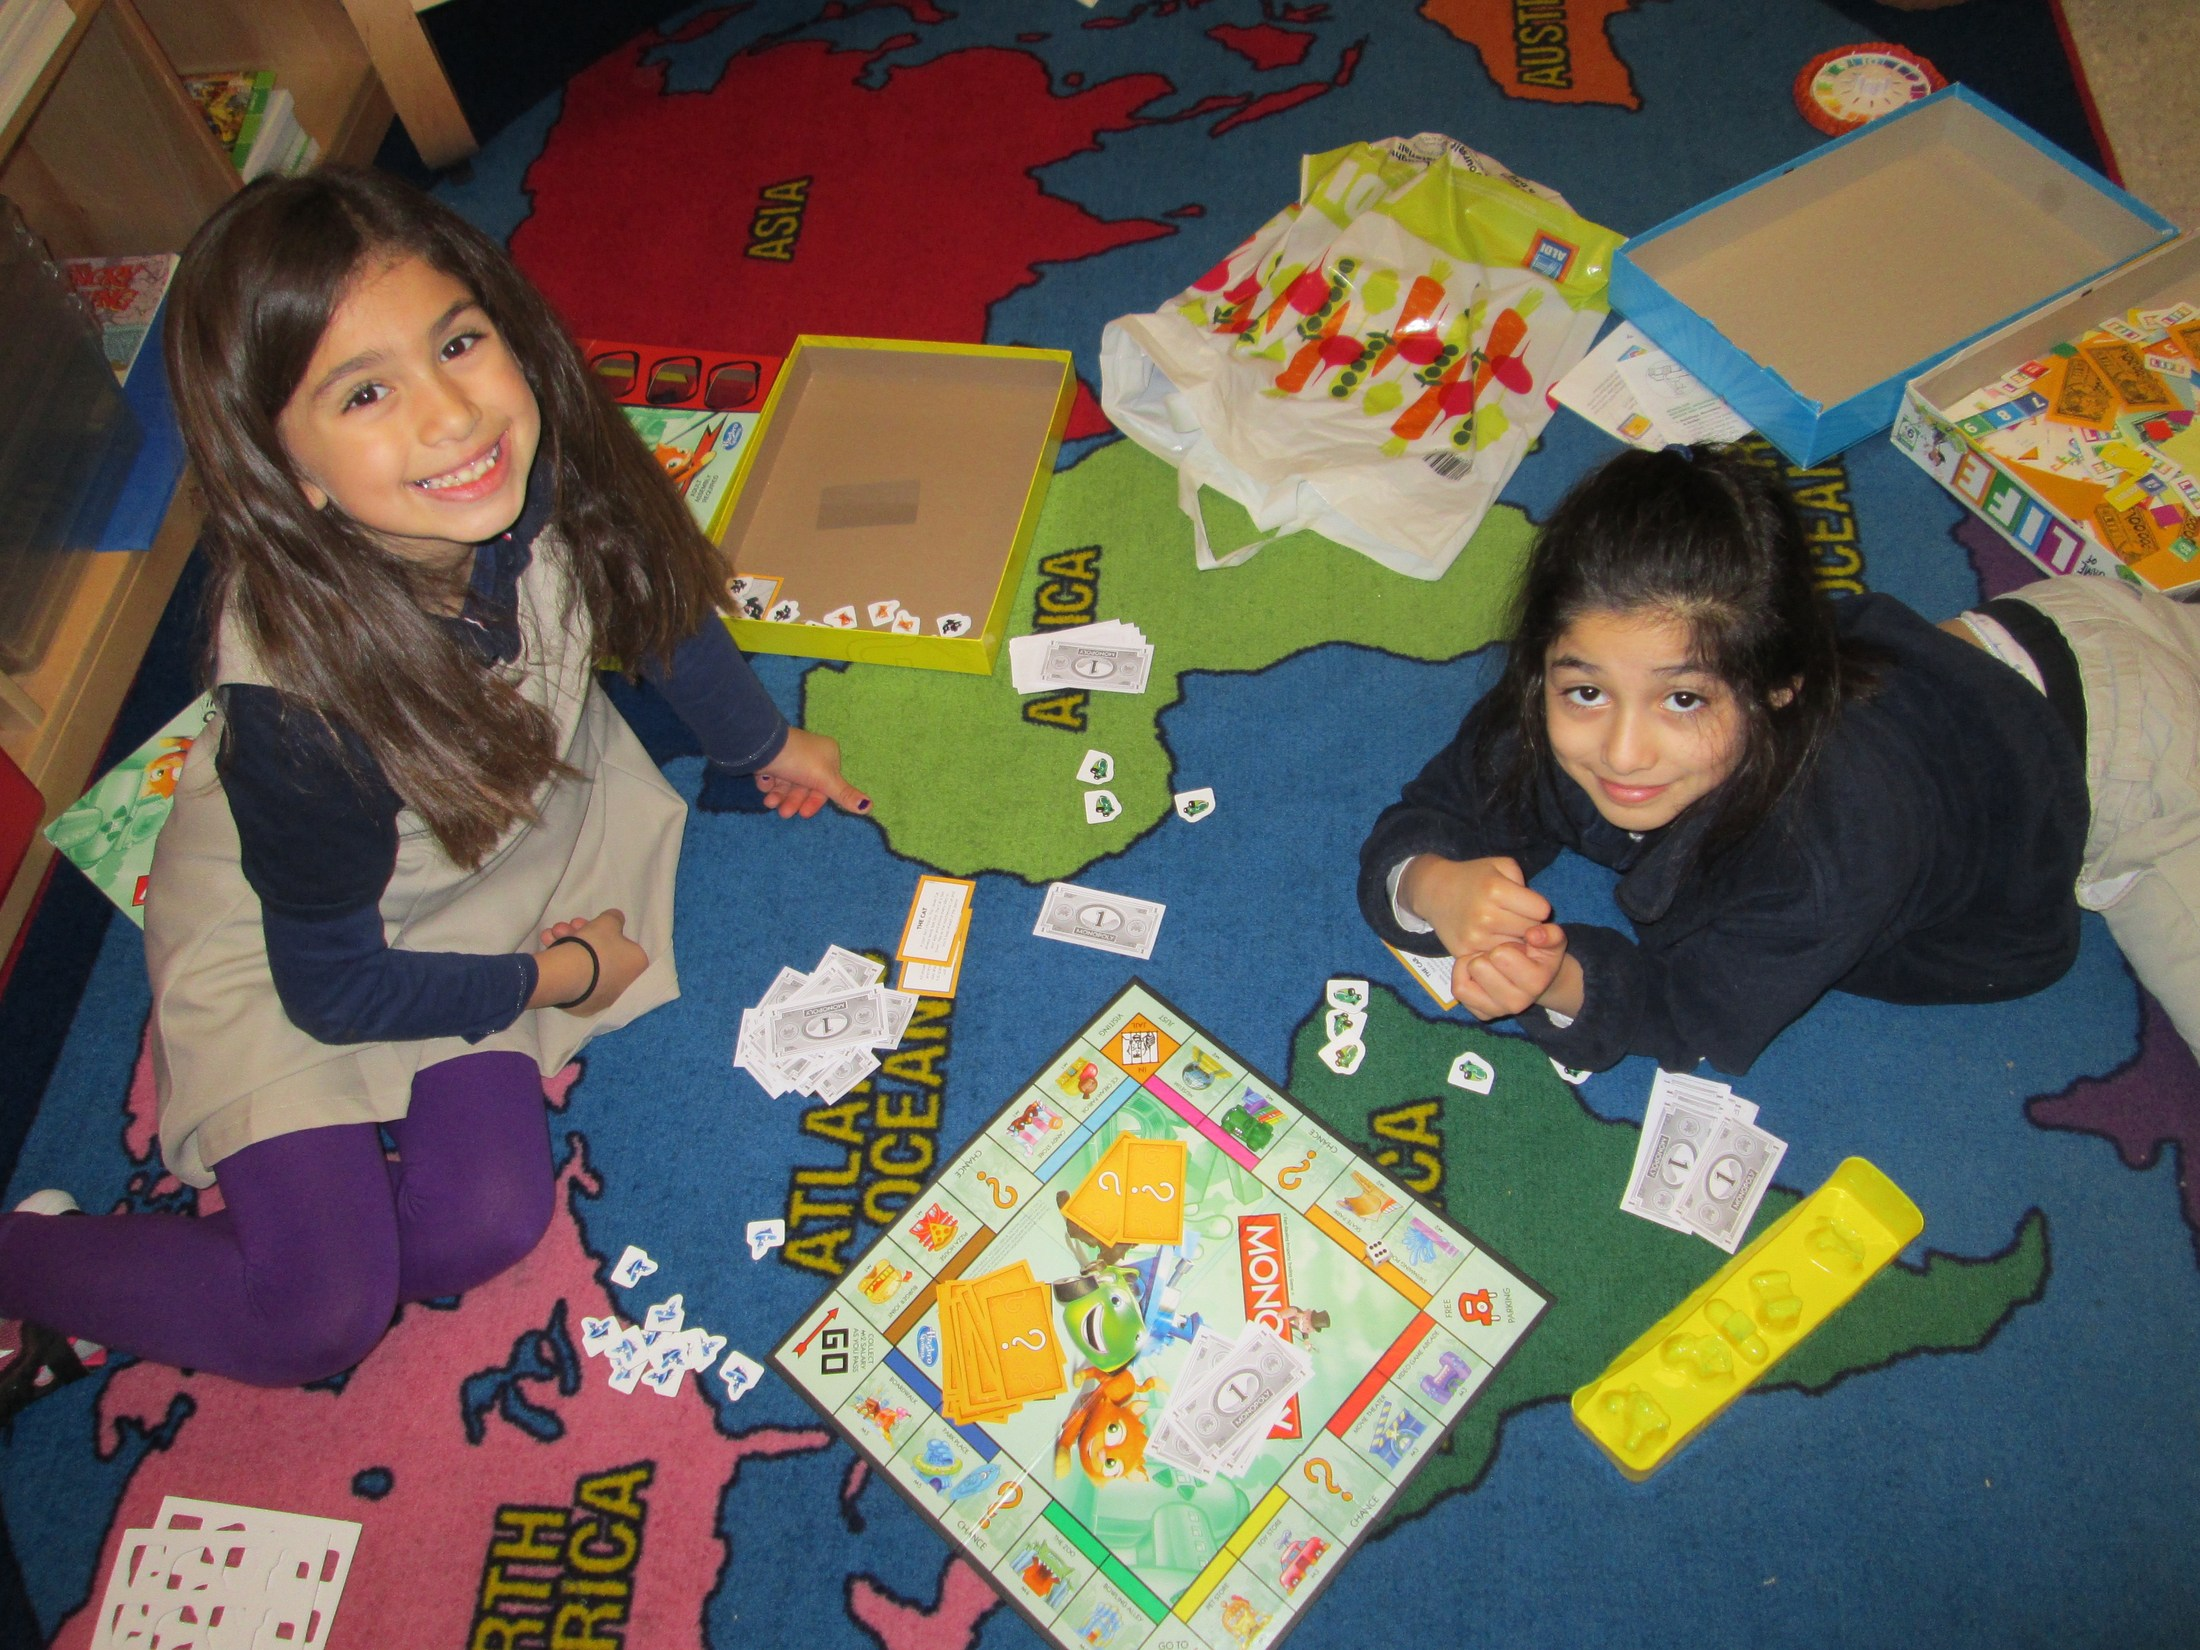 girls playing a board game on the floor